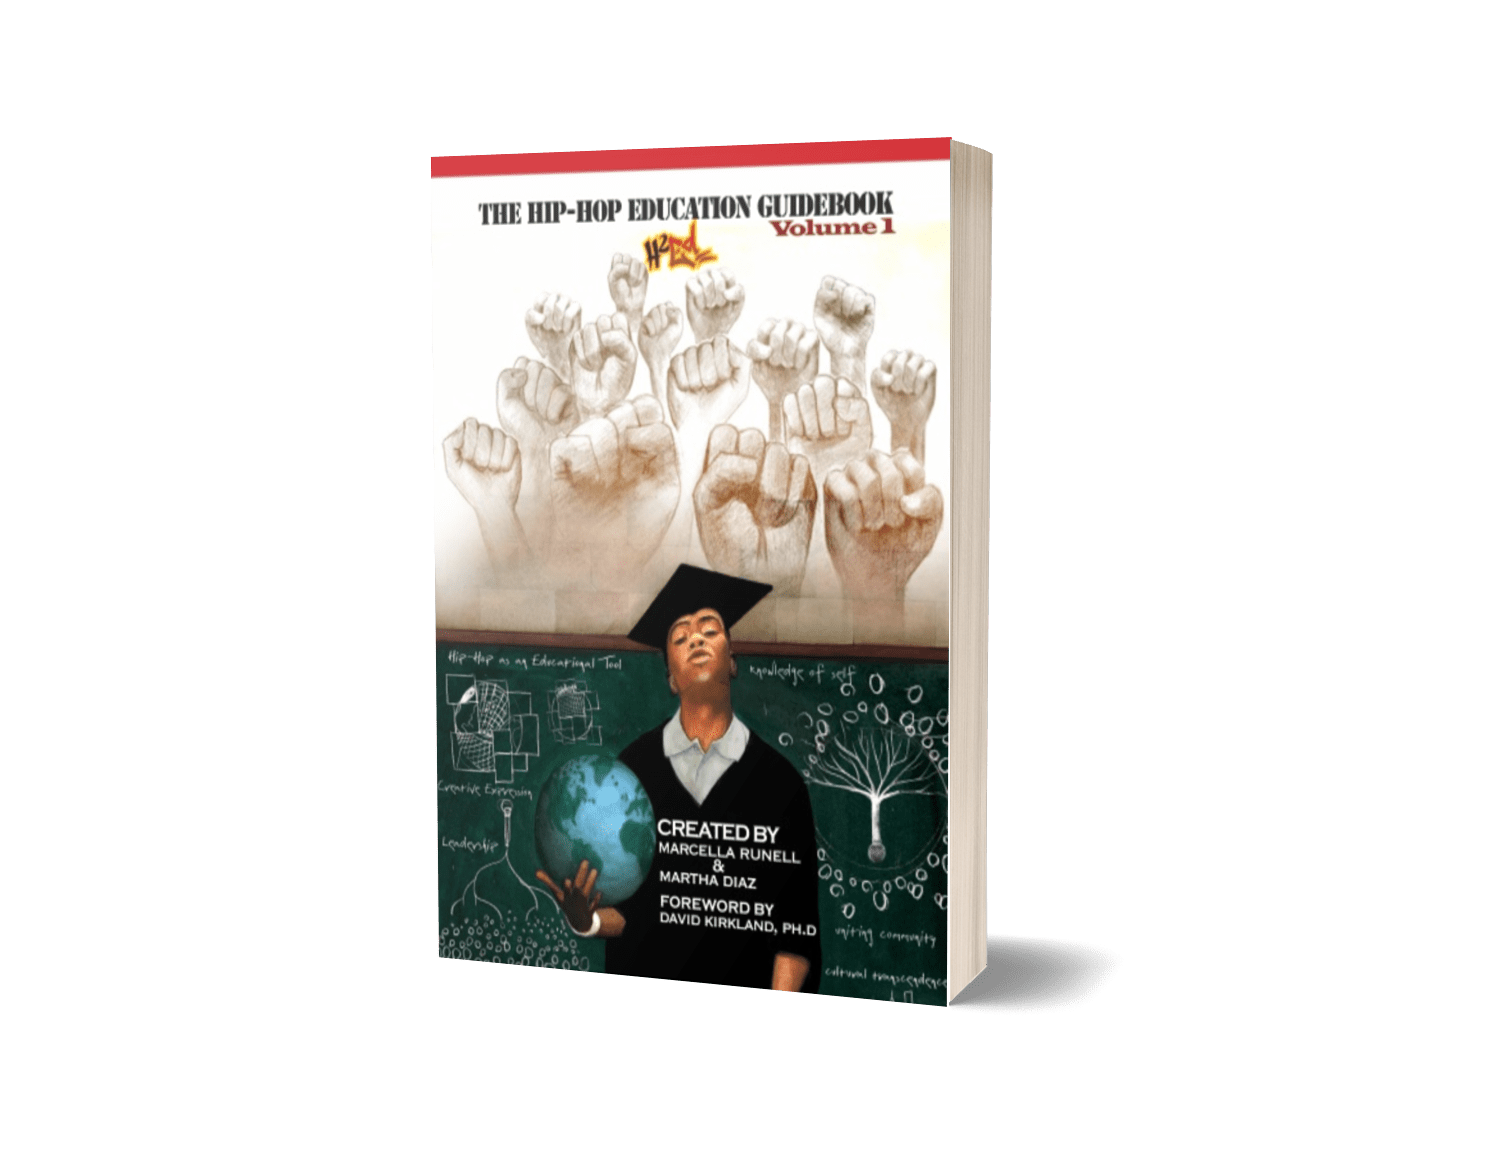 The Hip-Hop Education Guidebook Volume 1